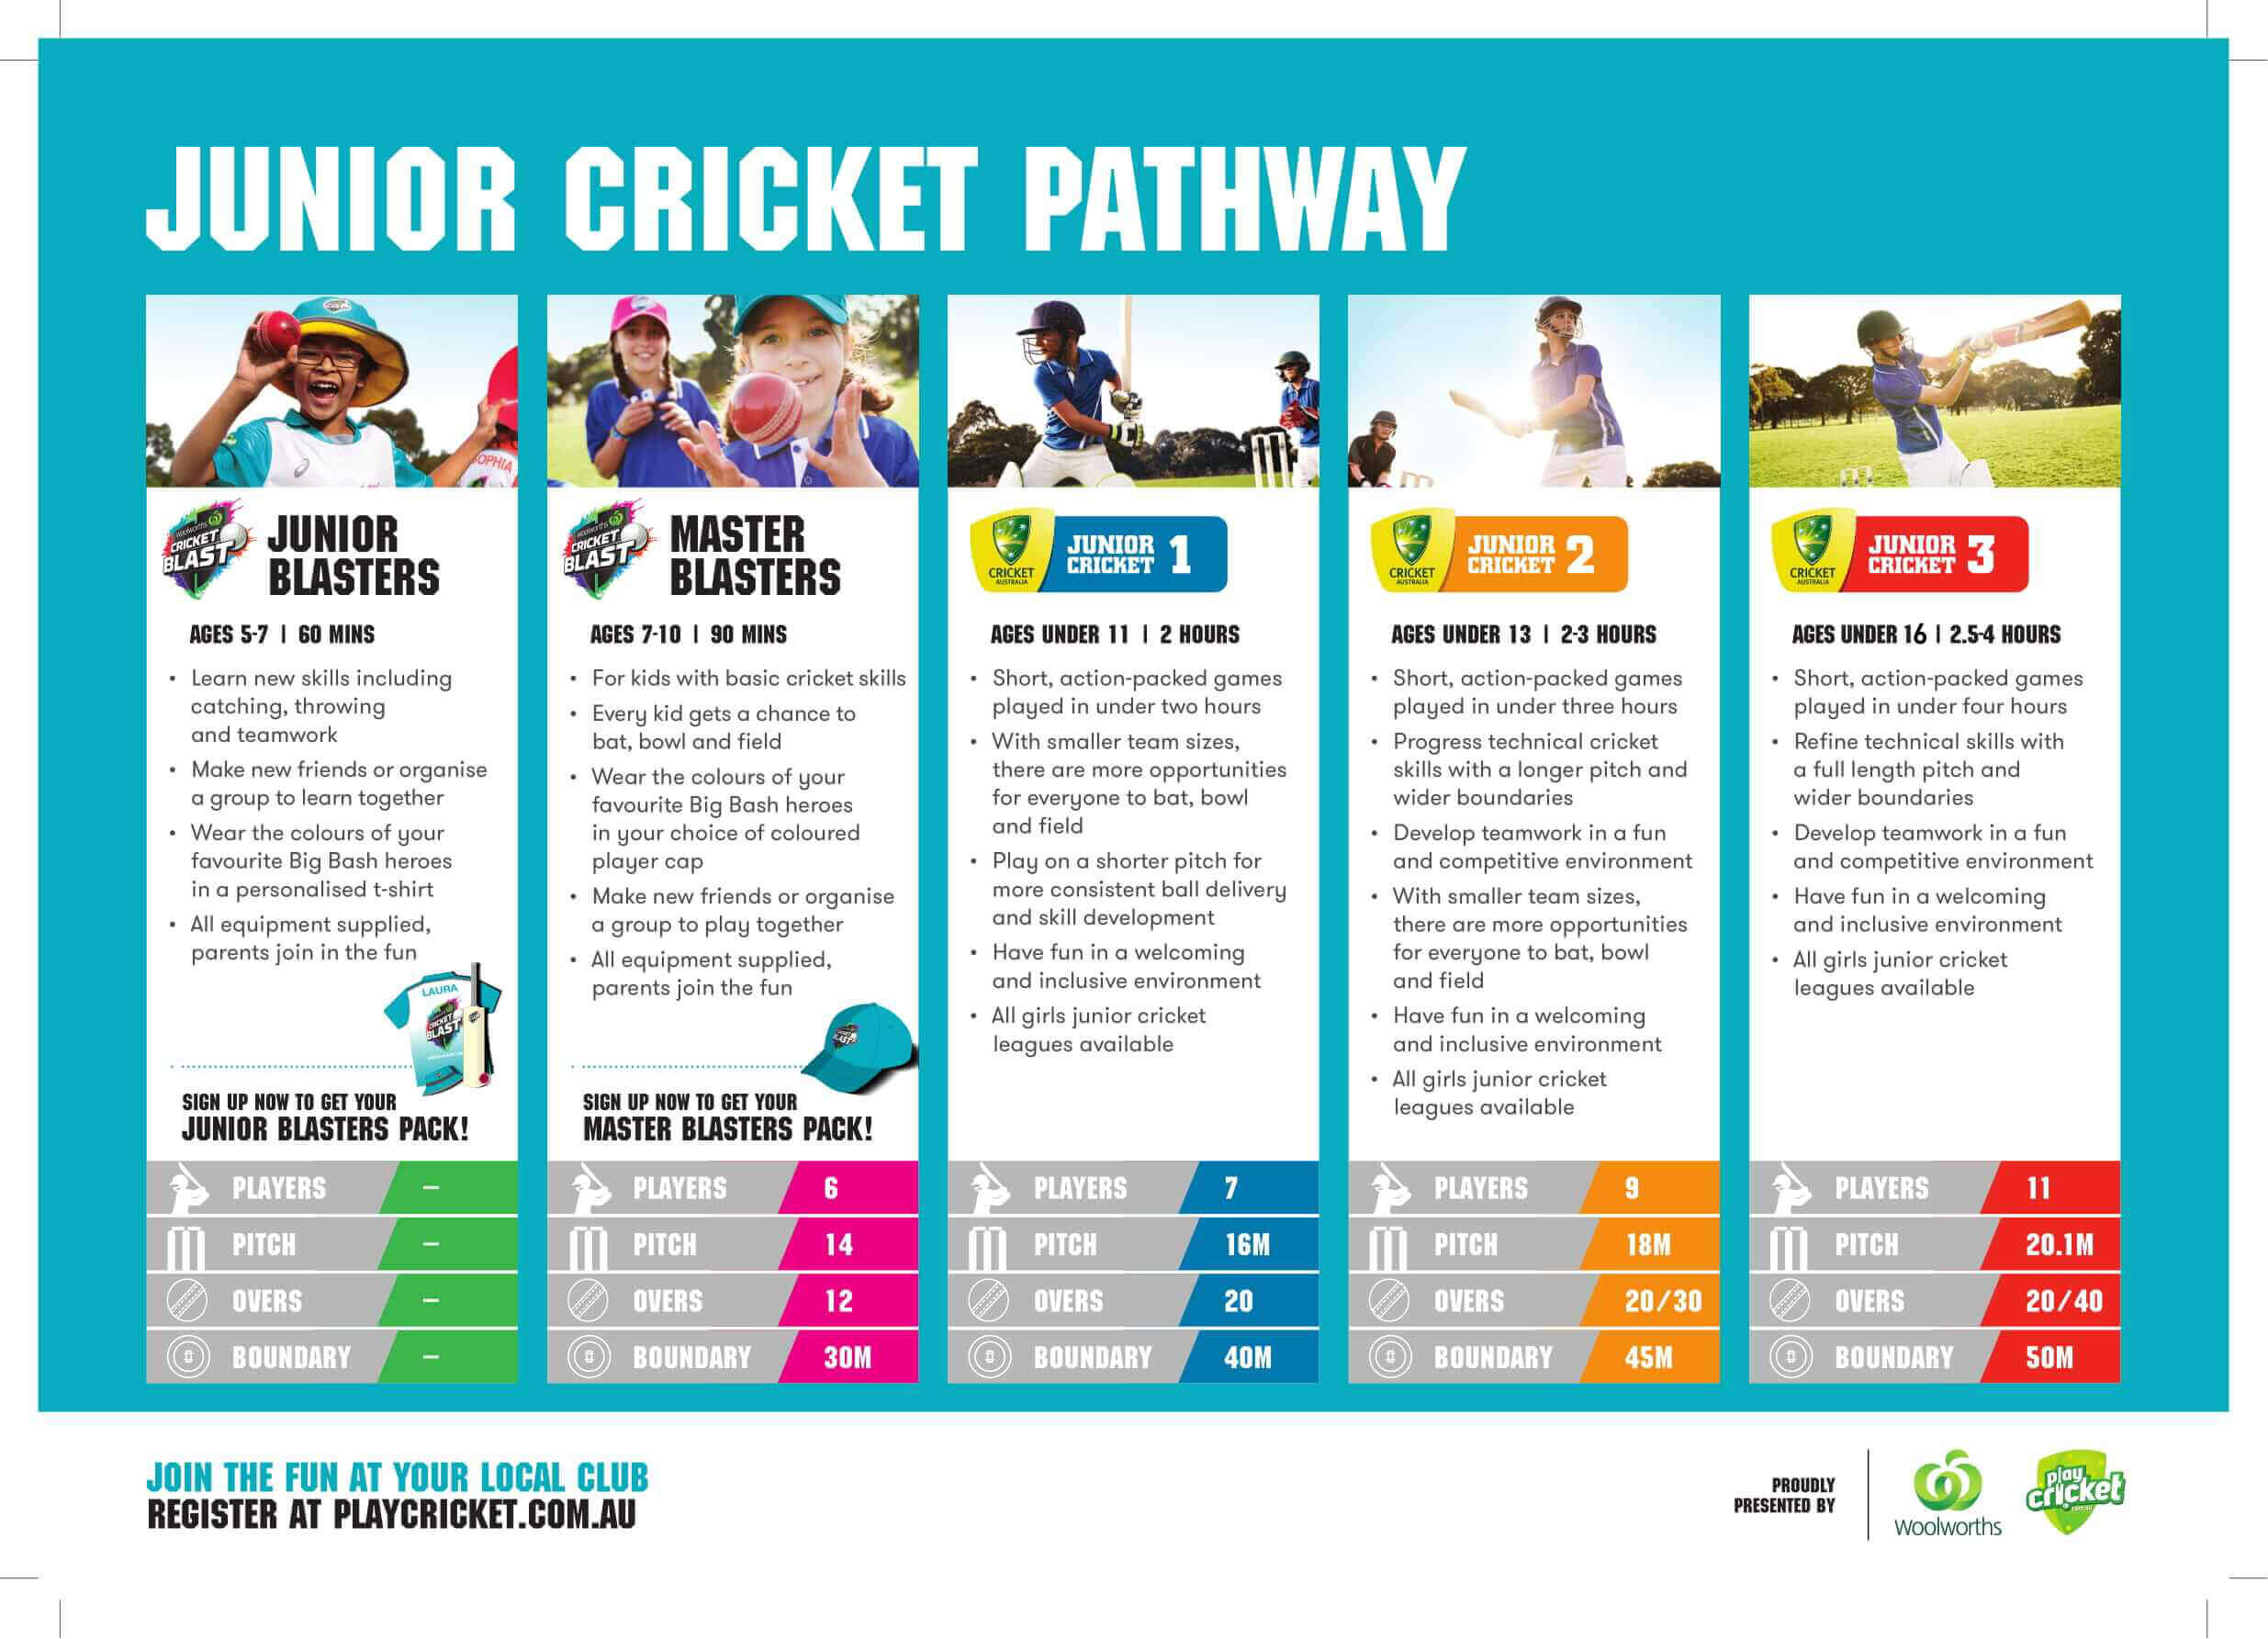 Junior Cricket Pathway Image 16 Yrs